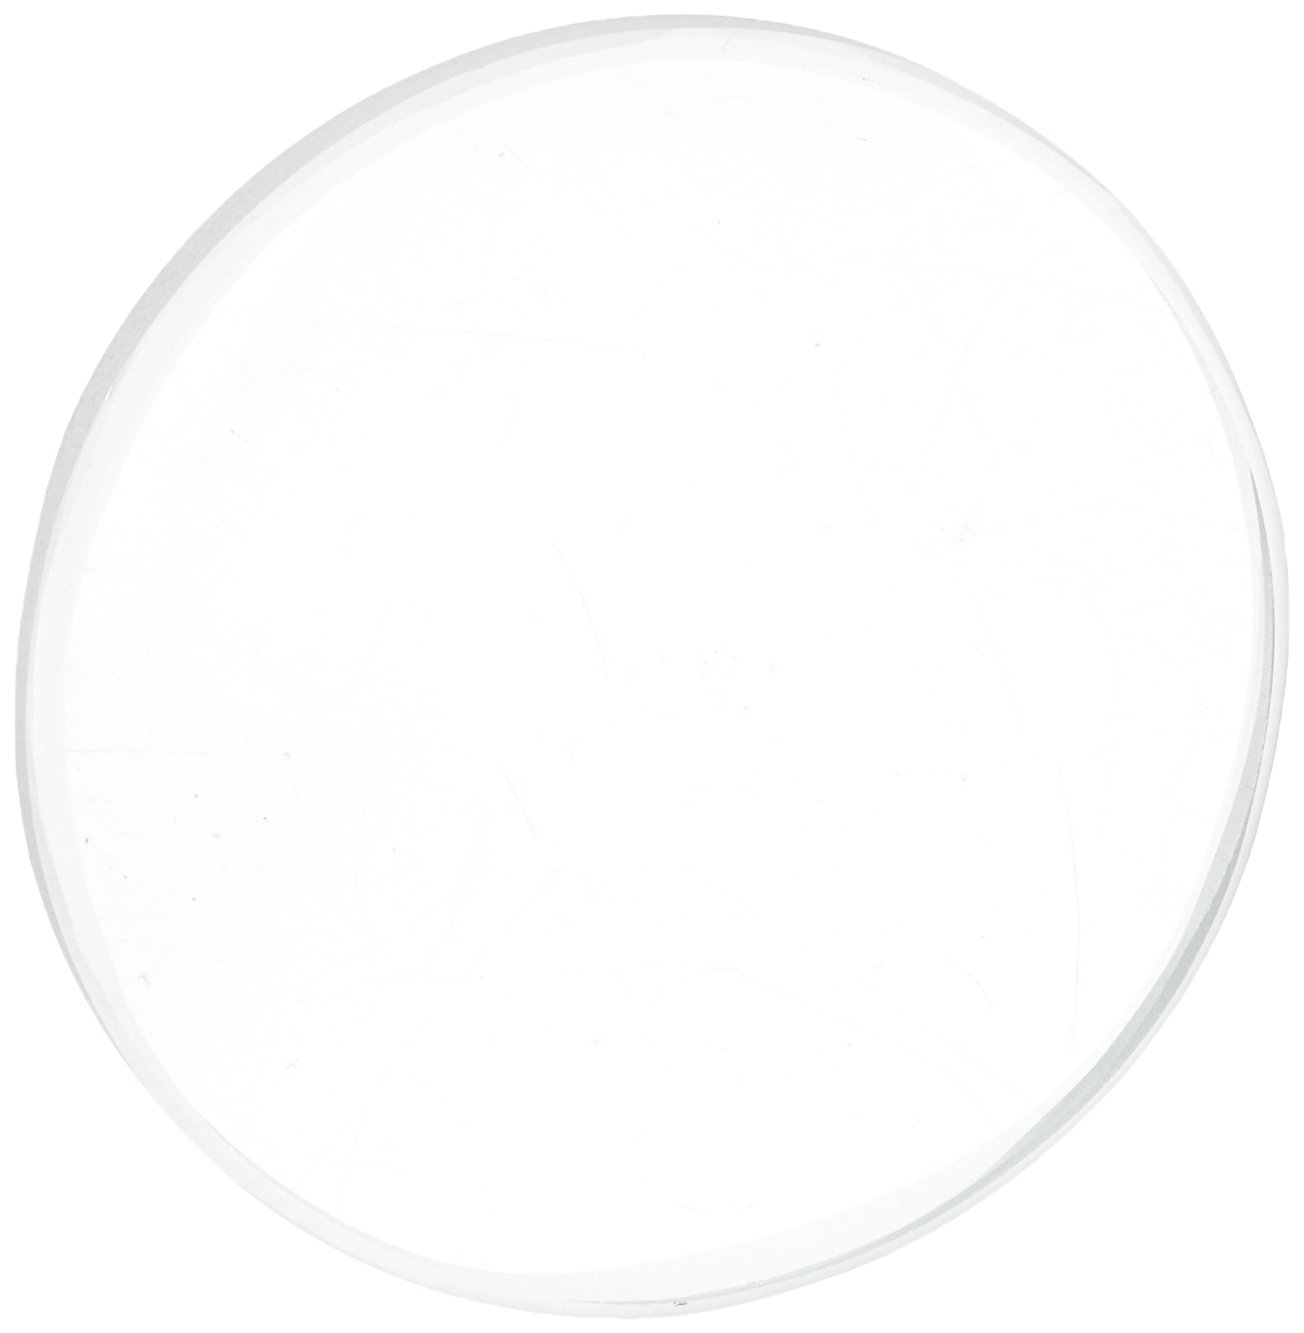 United Scientific DEMO75 Glass Demonstration Lens Set, 6 Pieces, 75mm Diameter by United Scientific Supplies